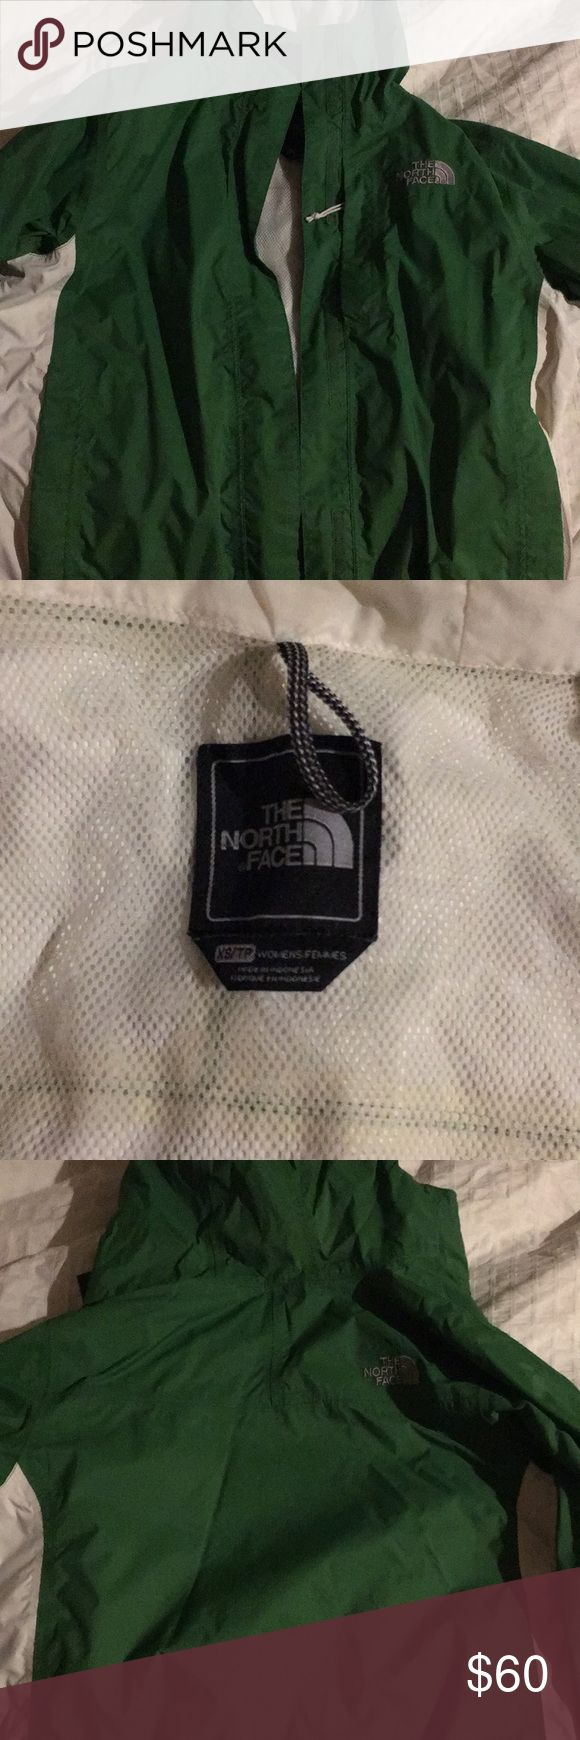 North Face windbreaker This windbreak is in great condition and was purchased from Dick's sporting goods The North Face Jackets & Coats Utility Jackets